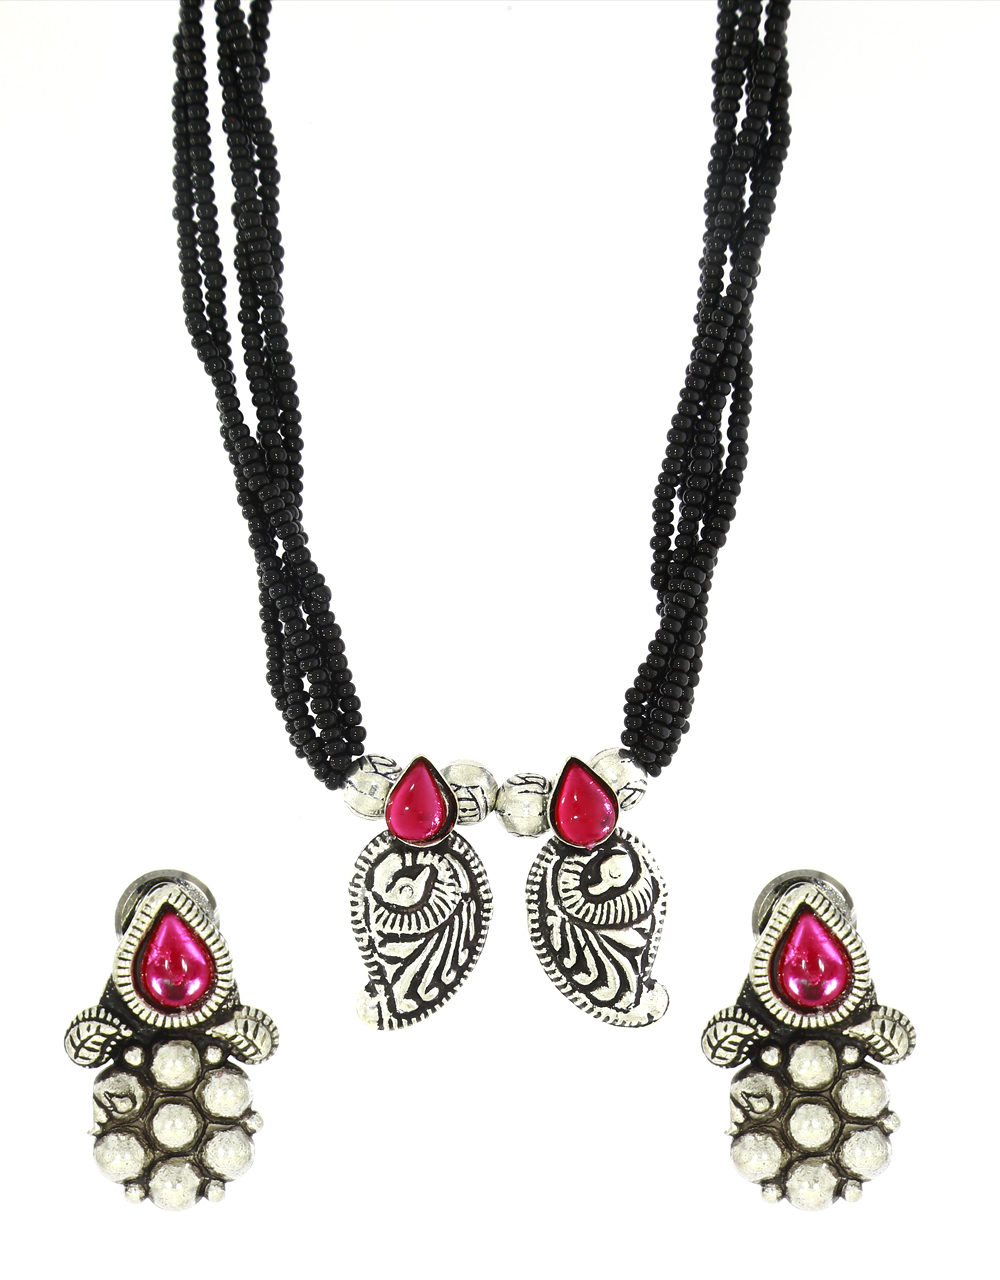 Oxidized Mangalsutra Set Traditional Mangalsutra For Women Tribal Jewellery Temple Mangalsutra